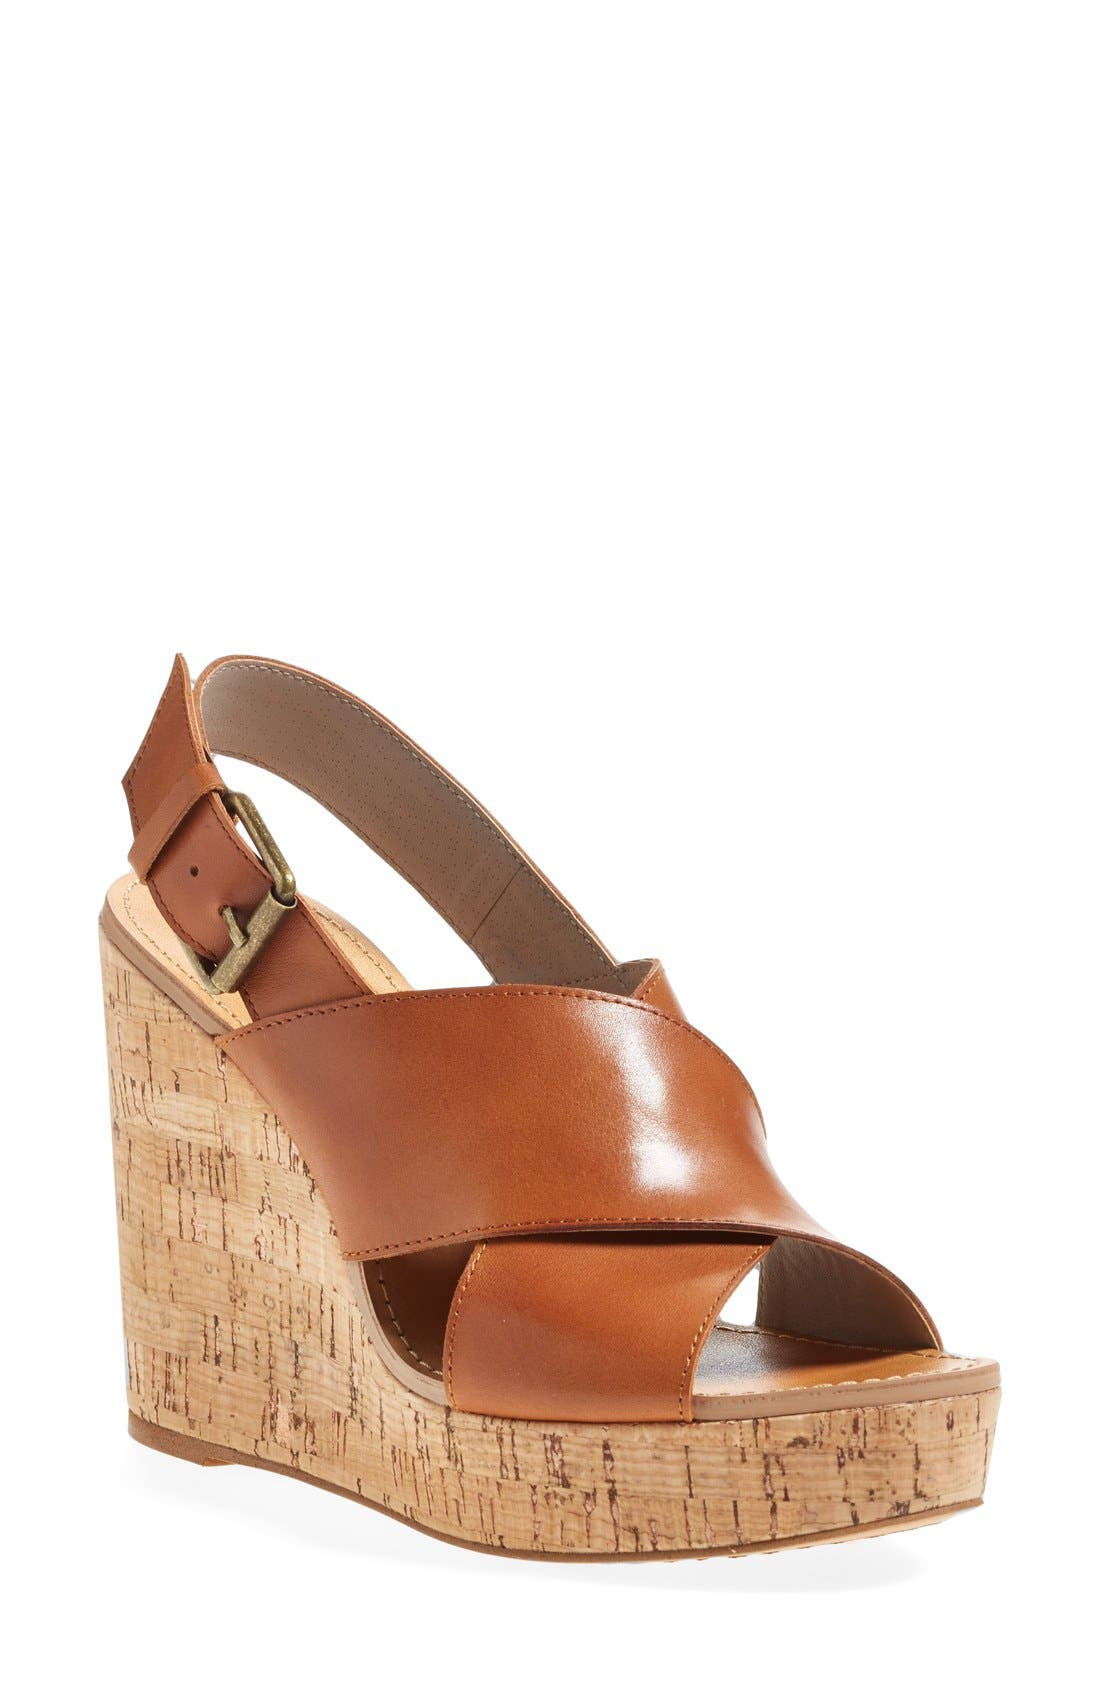 Main Image - Hinge 'Hannah' Wedge Sandal (Women)